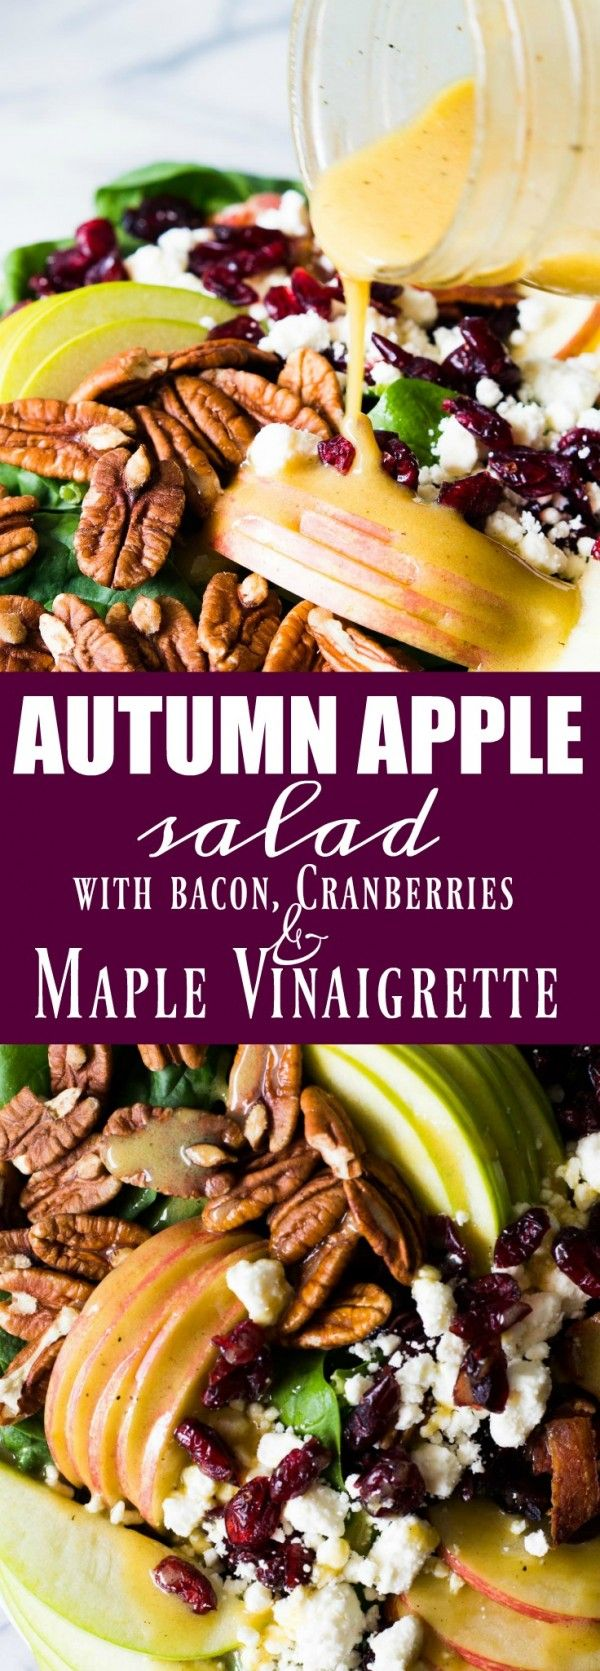 Get the recipe ♥ Apple Salad with Bacon, Cranberries and Maple Vinaigrette @recipes_to_go #besttoeat